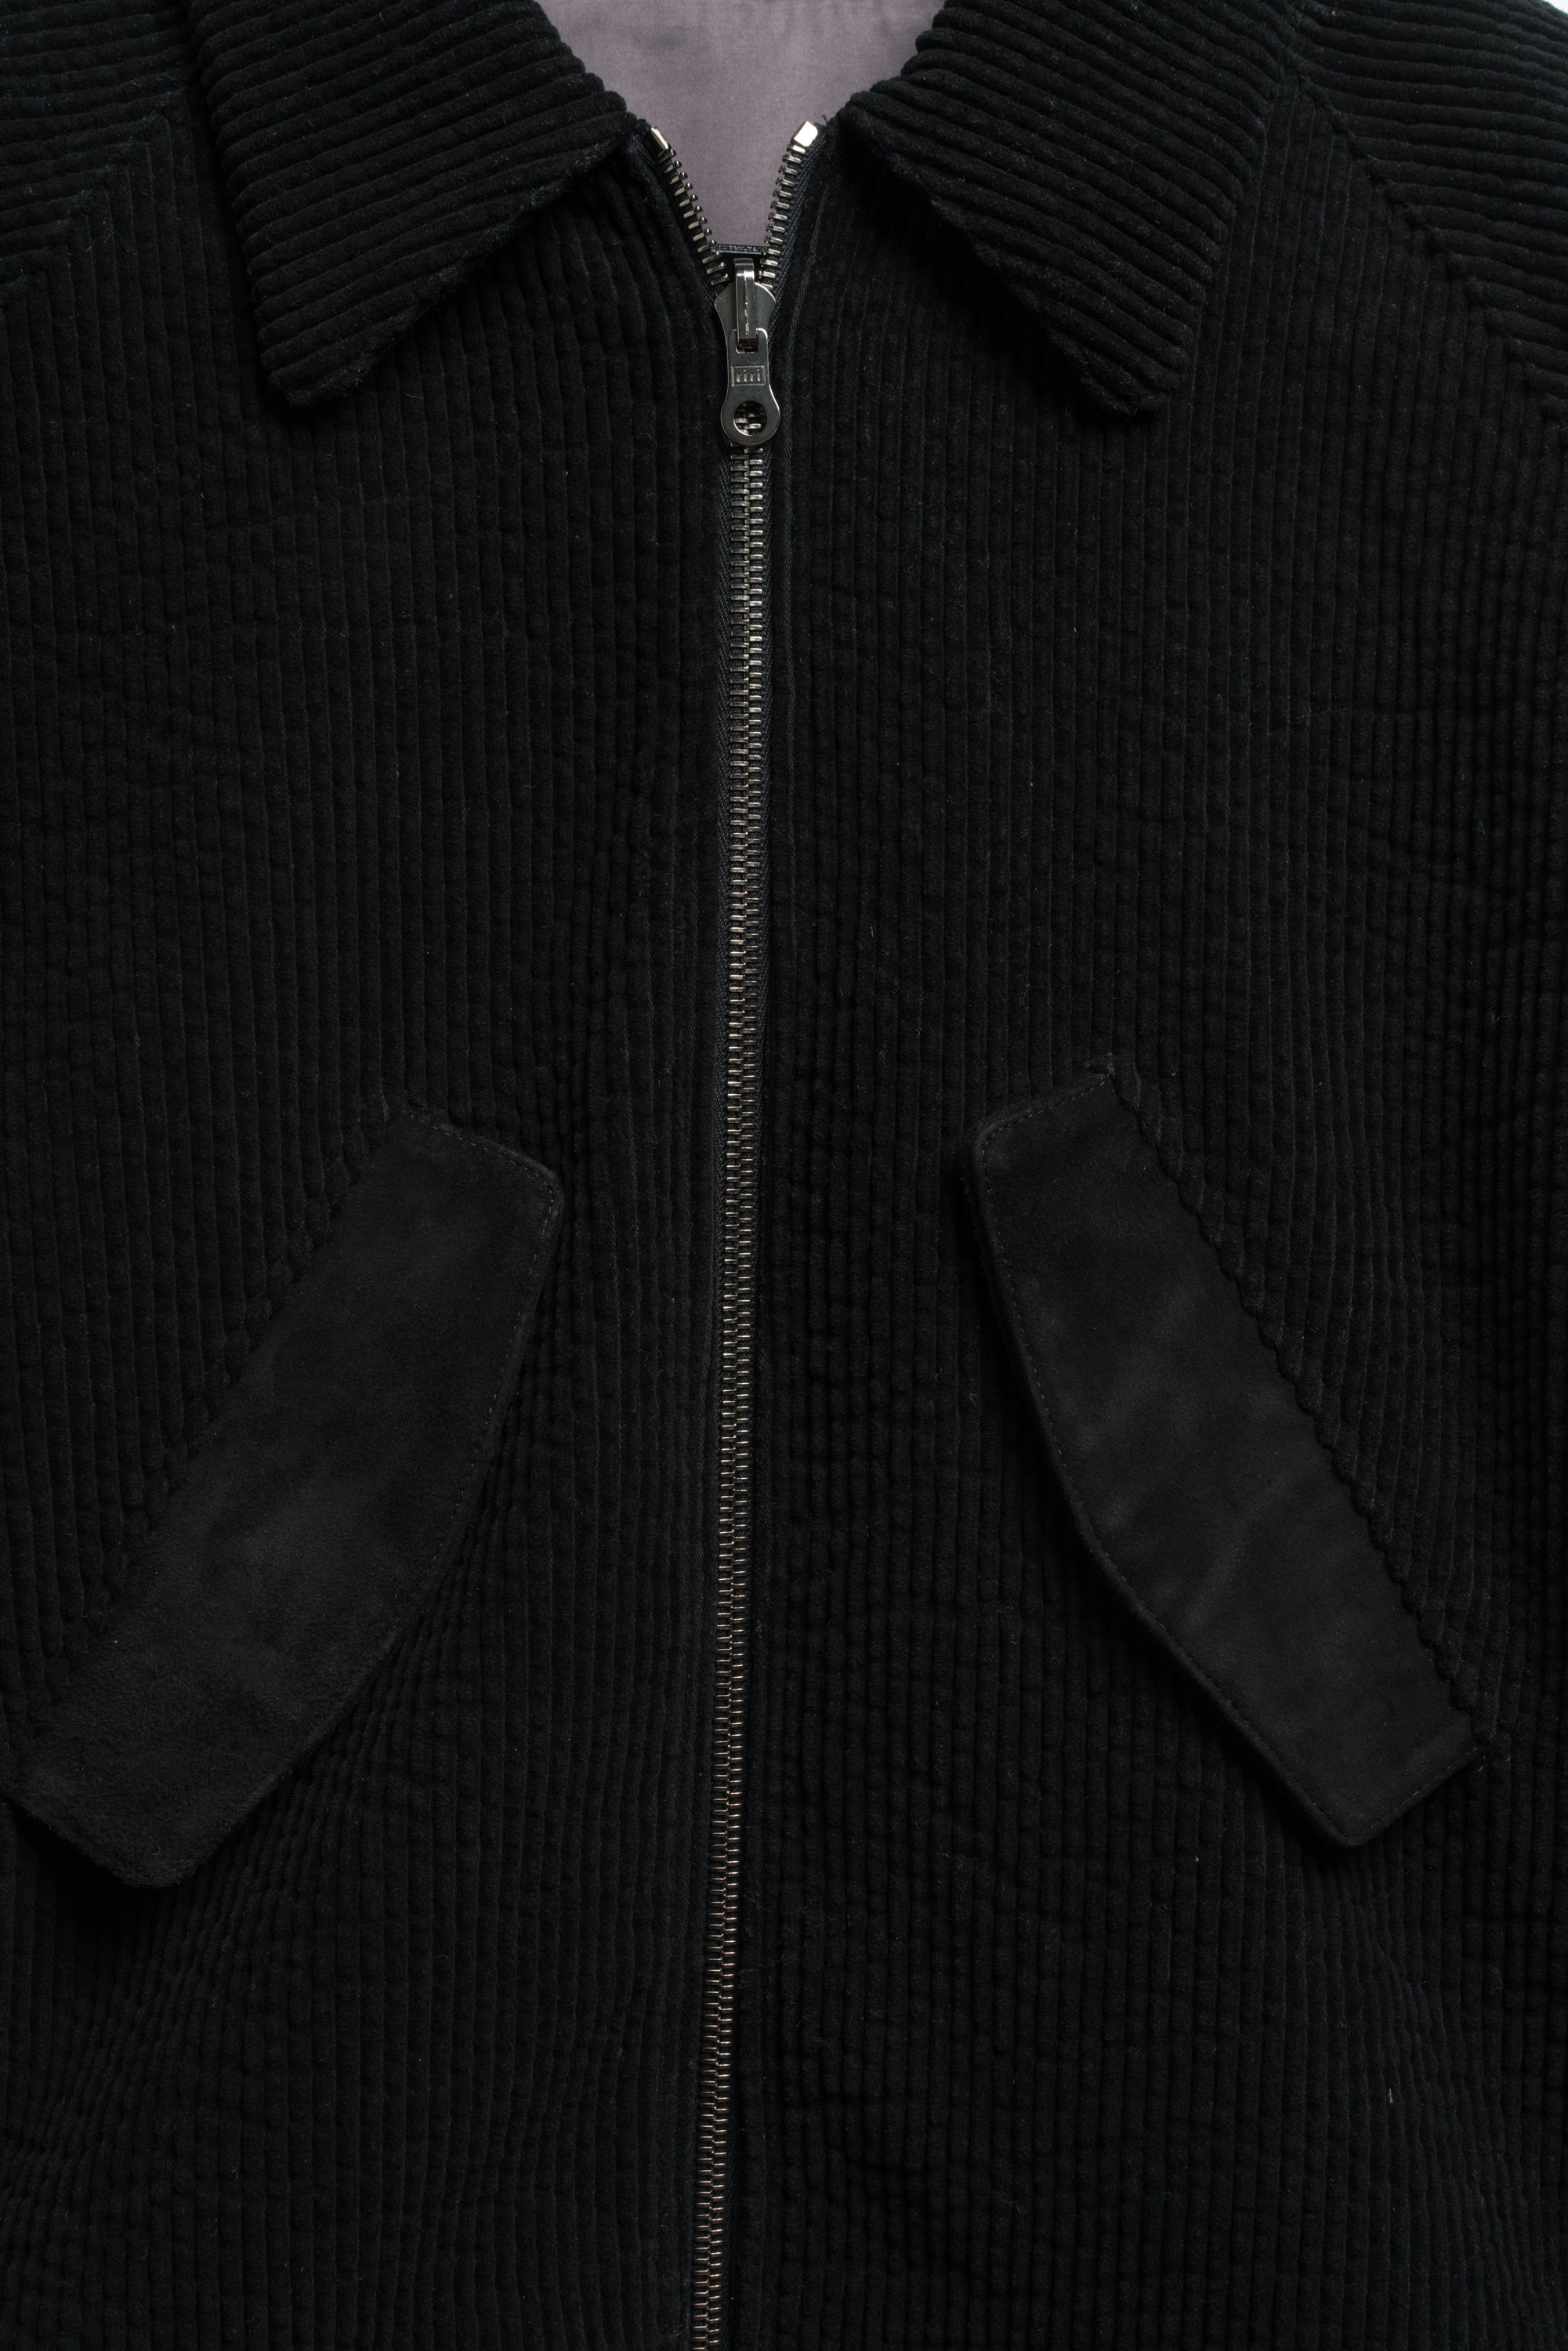 HARRINGTON JACKET IN JAPANESE BLACK  CORDUROY